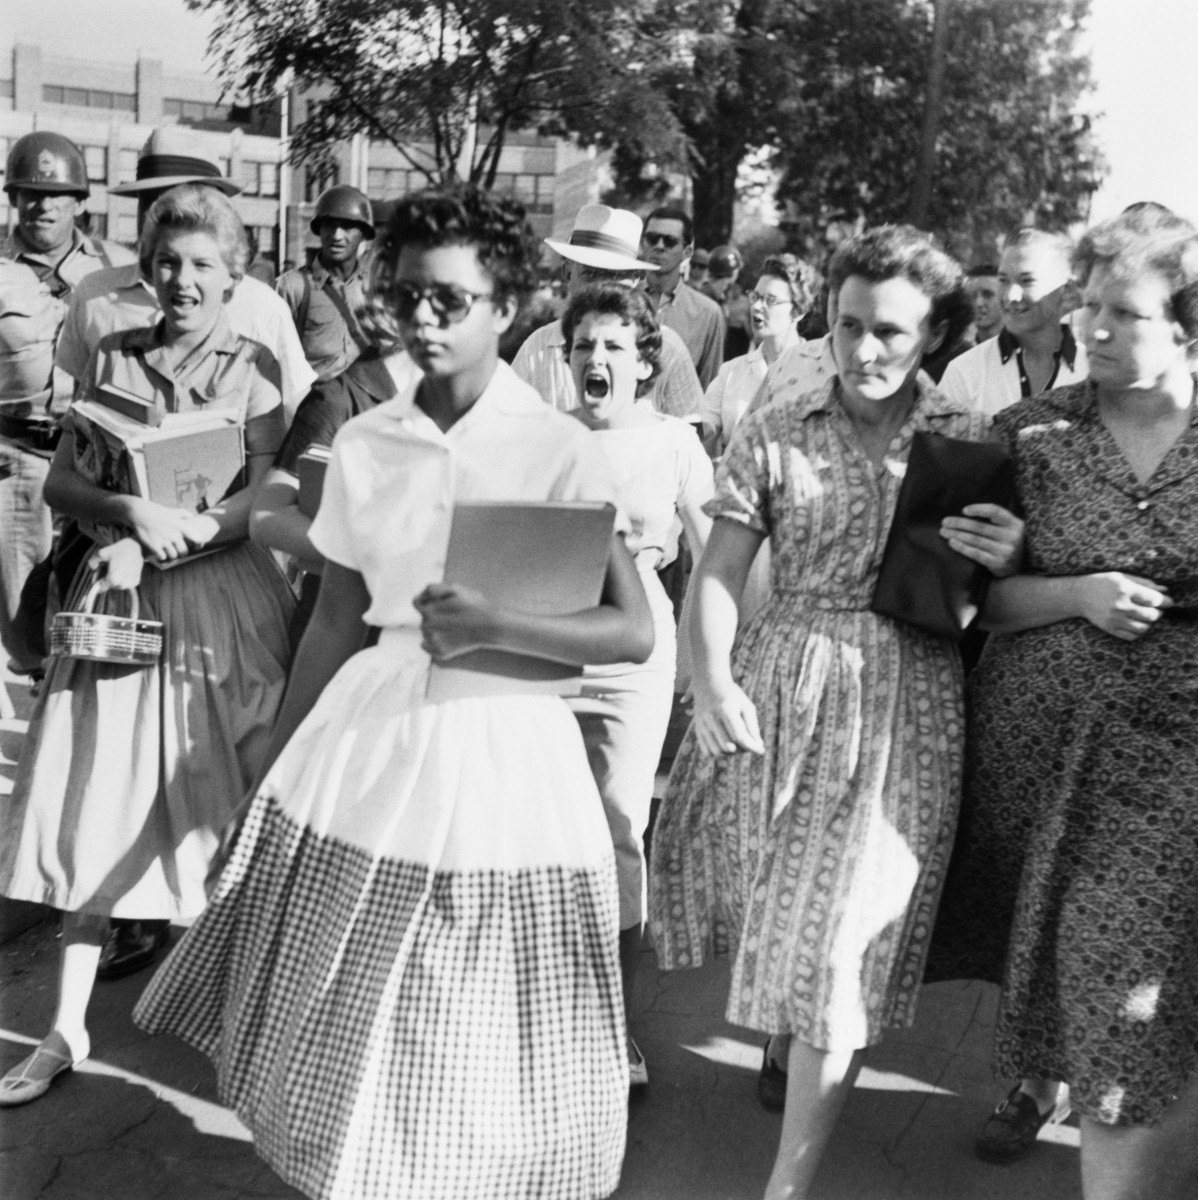 Elizabeth Eckford Little Rock Nine Photo